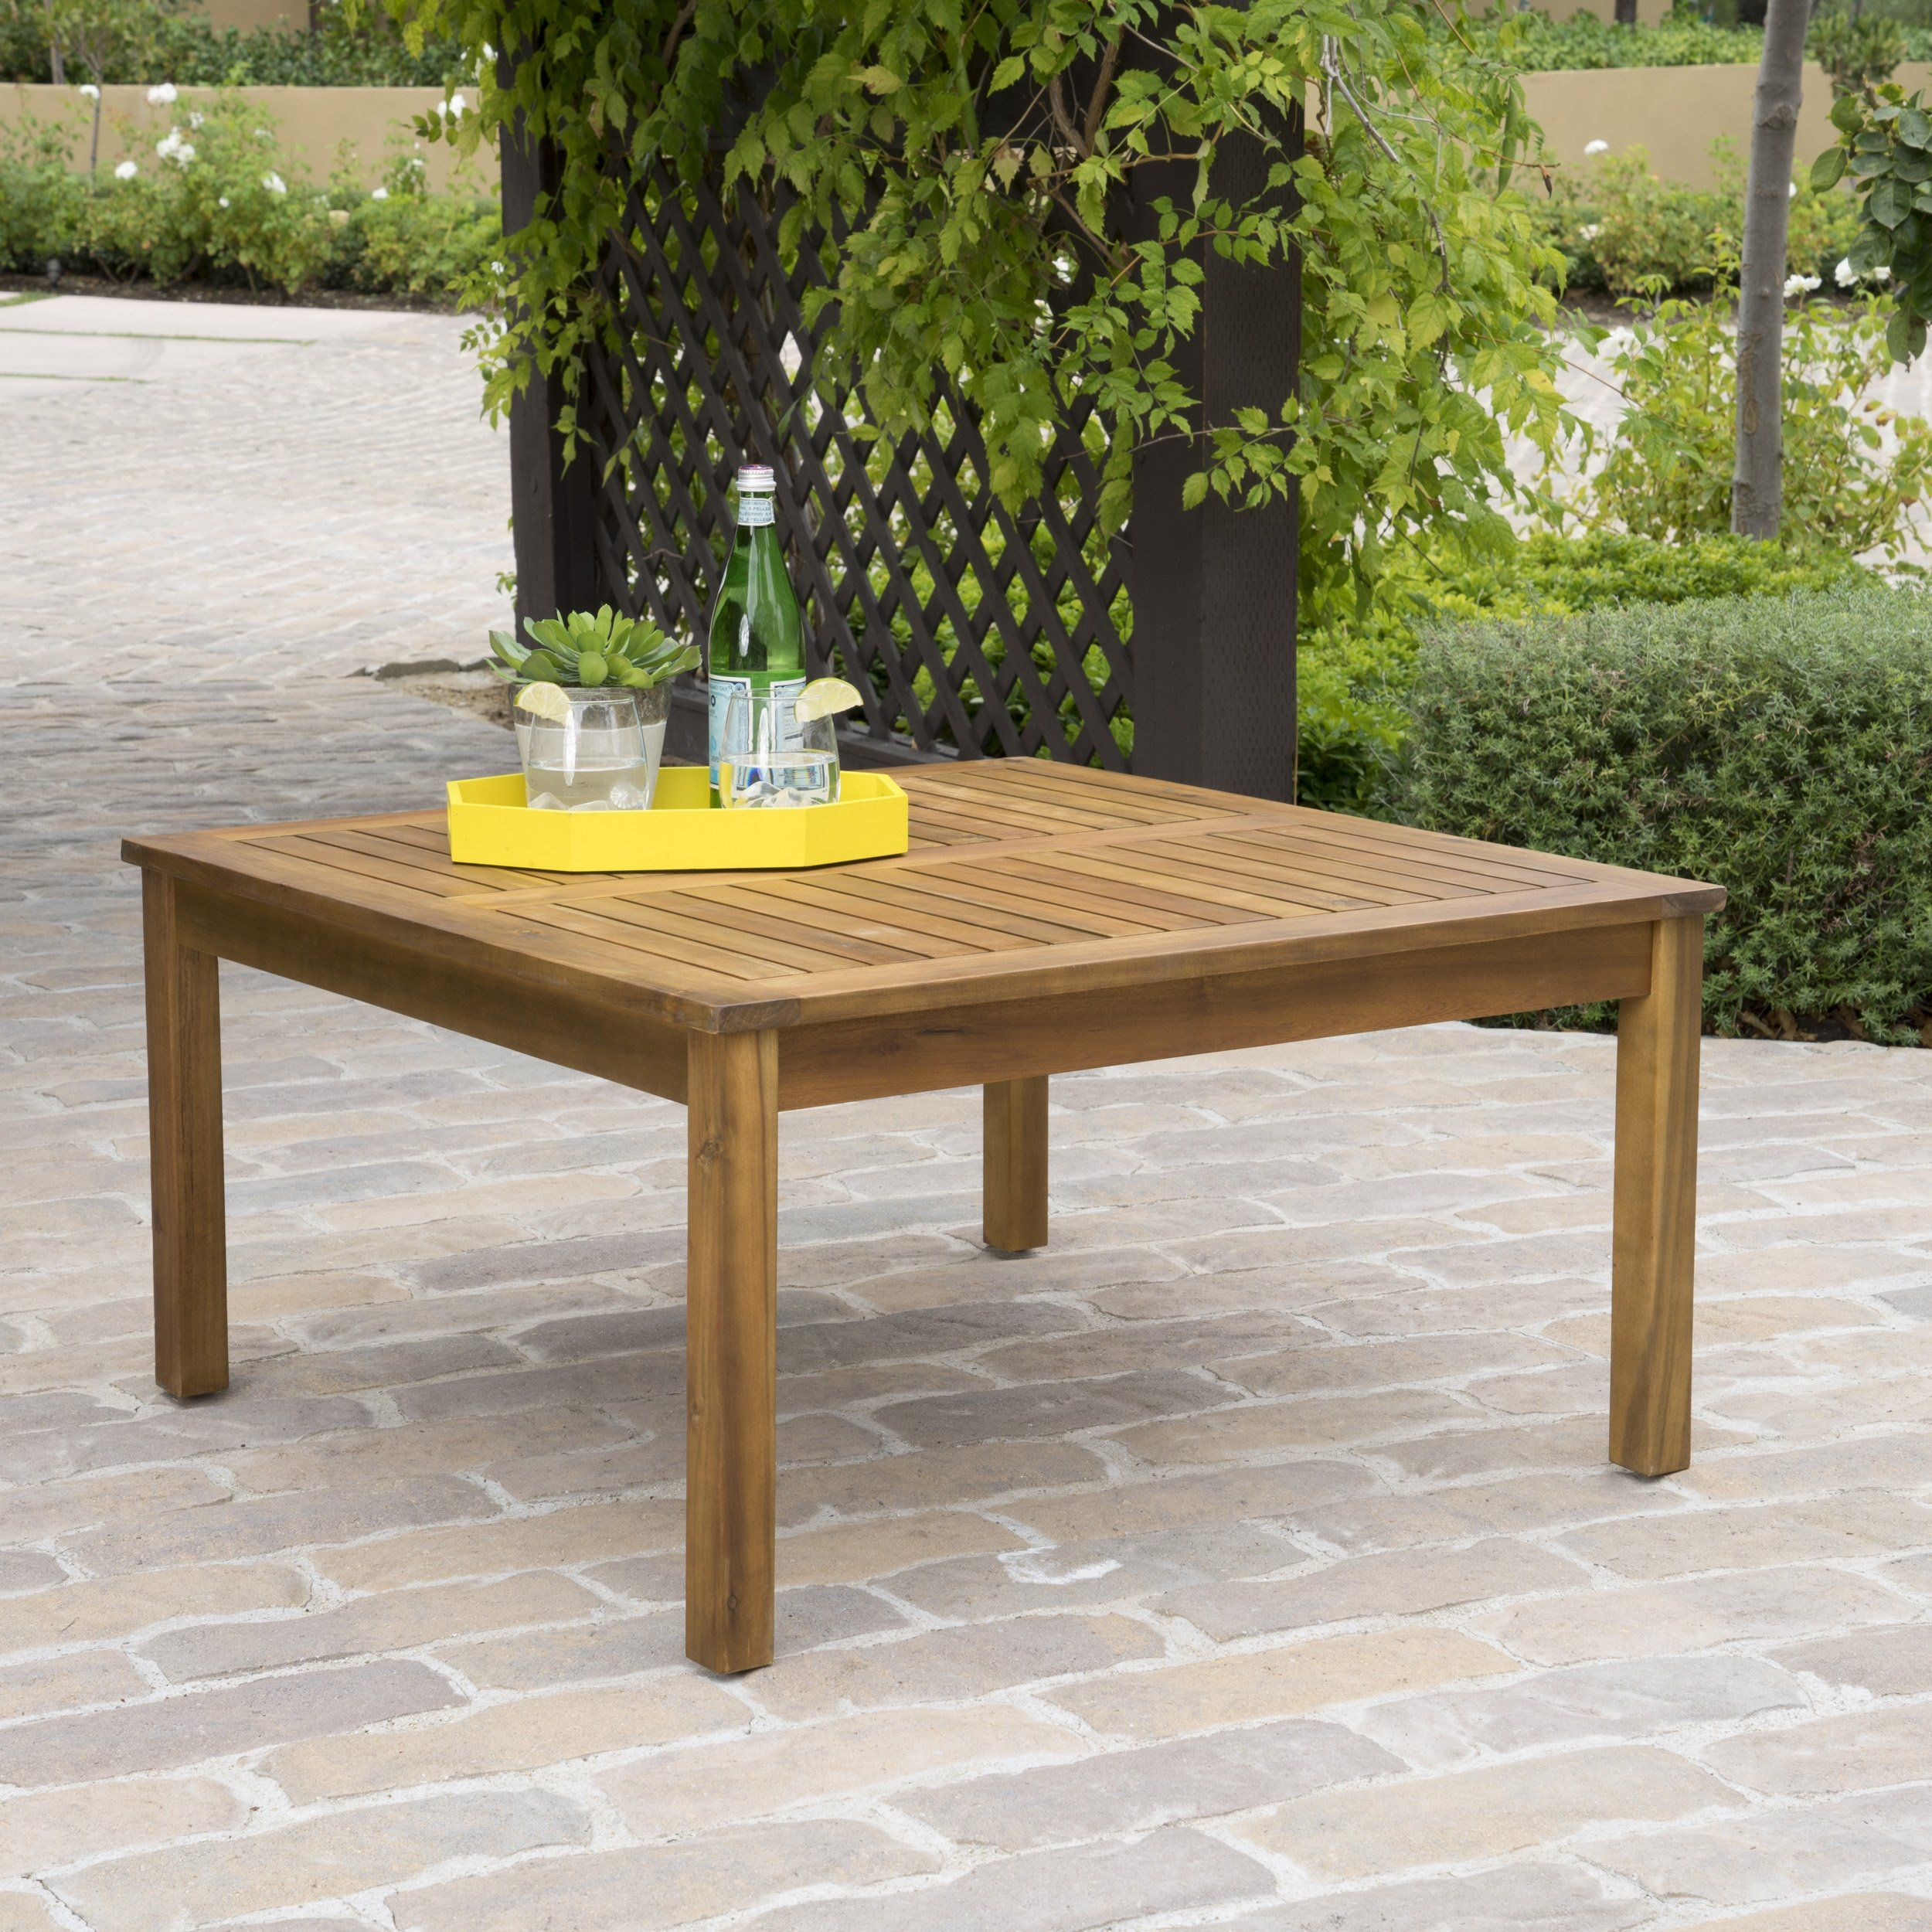 Capri Outdoor Teak Fnished Acacia Wood Coffee Table Coffee Table